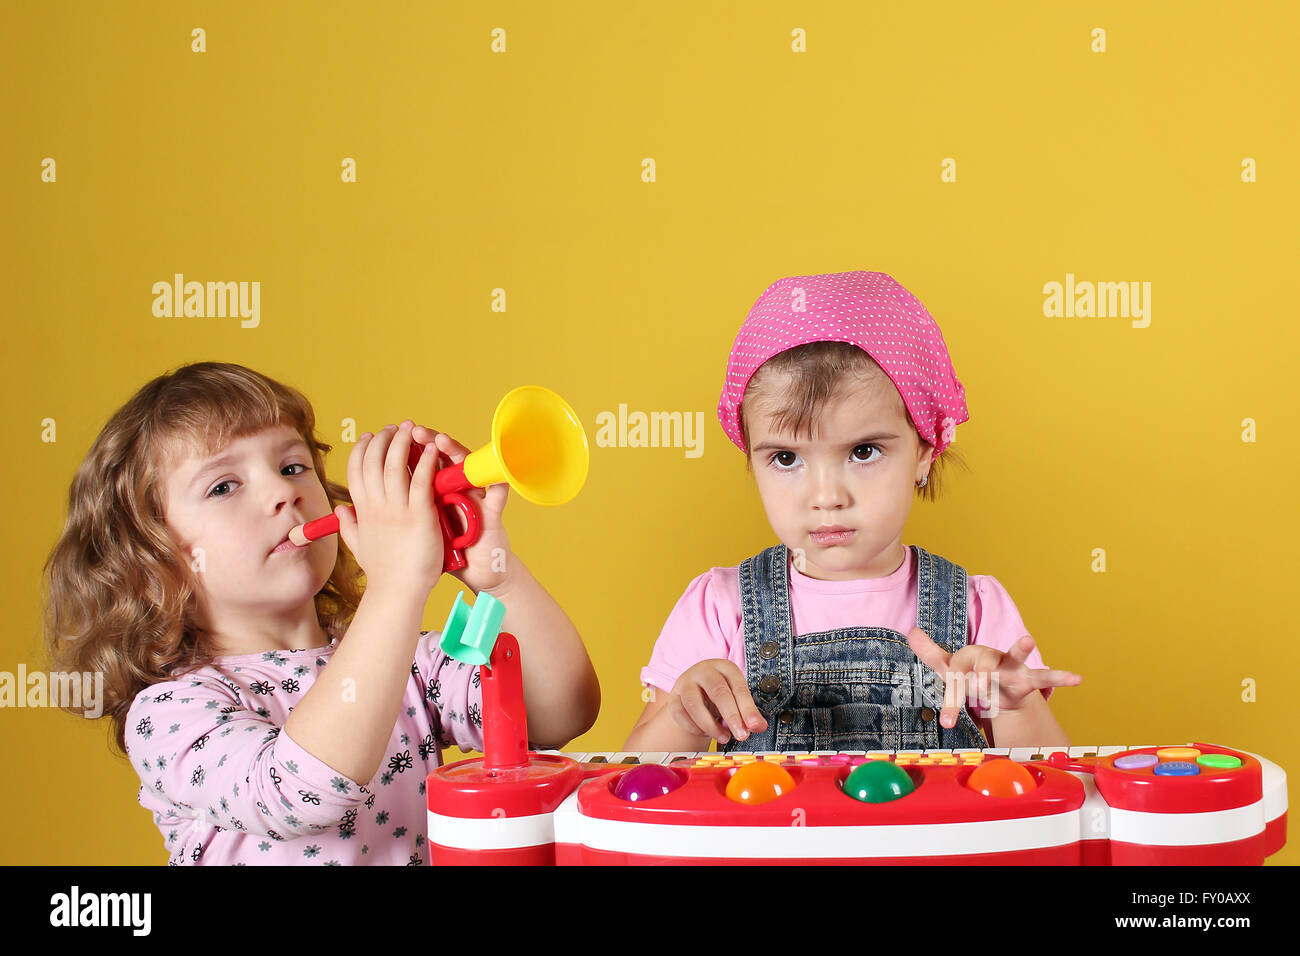 two little girls playing music - Stock Image